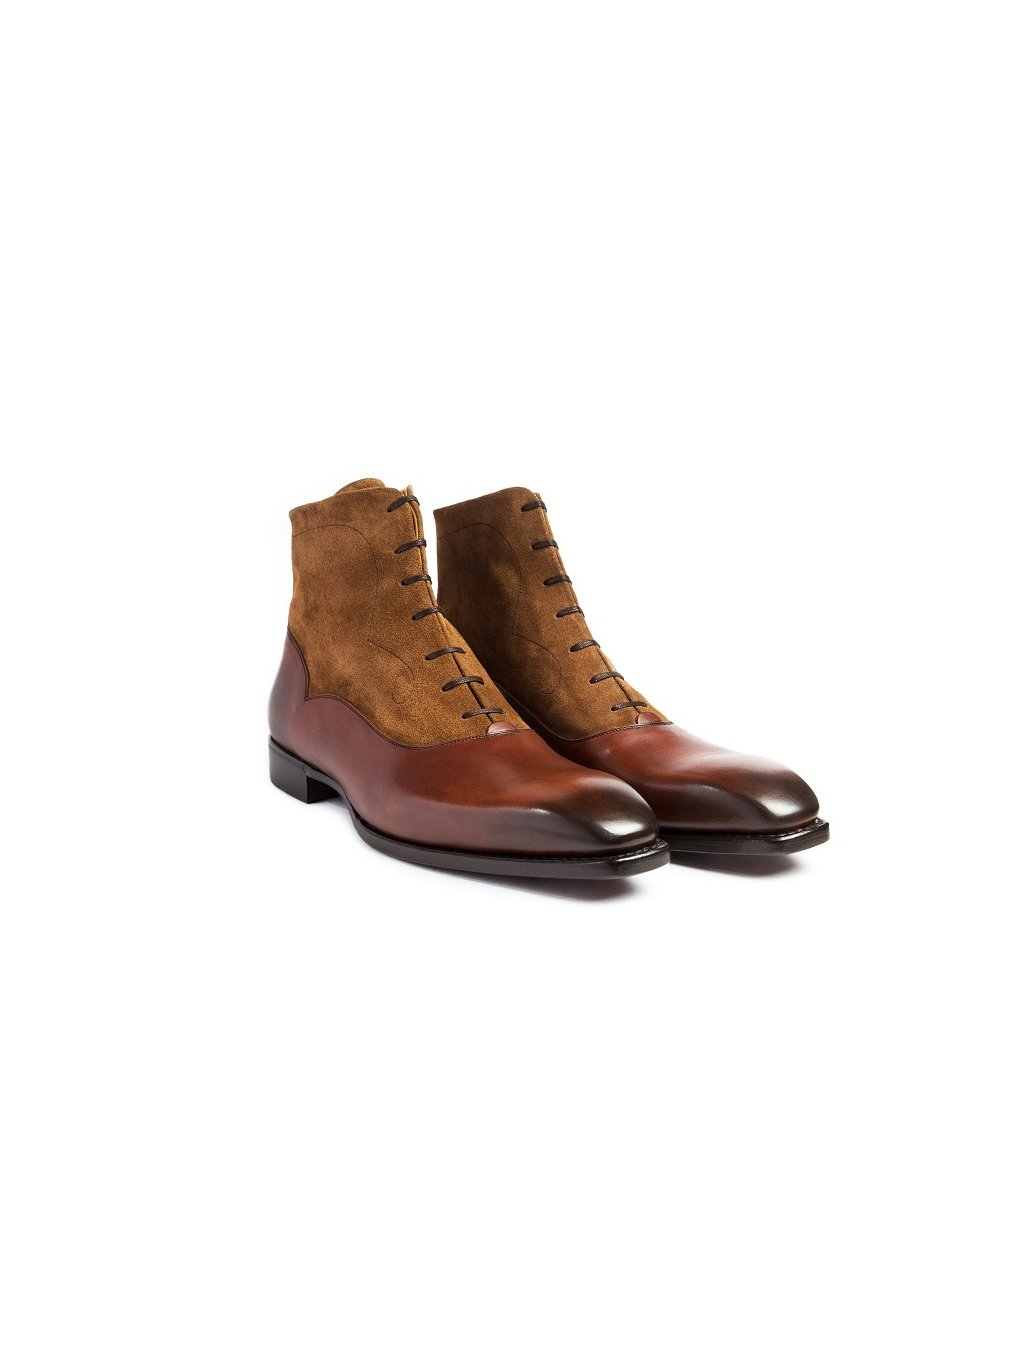 Boty boots brown